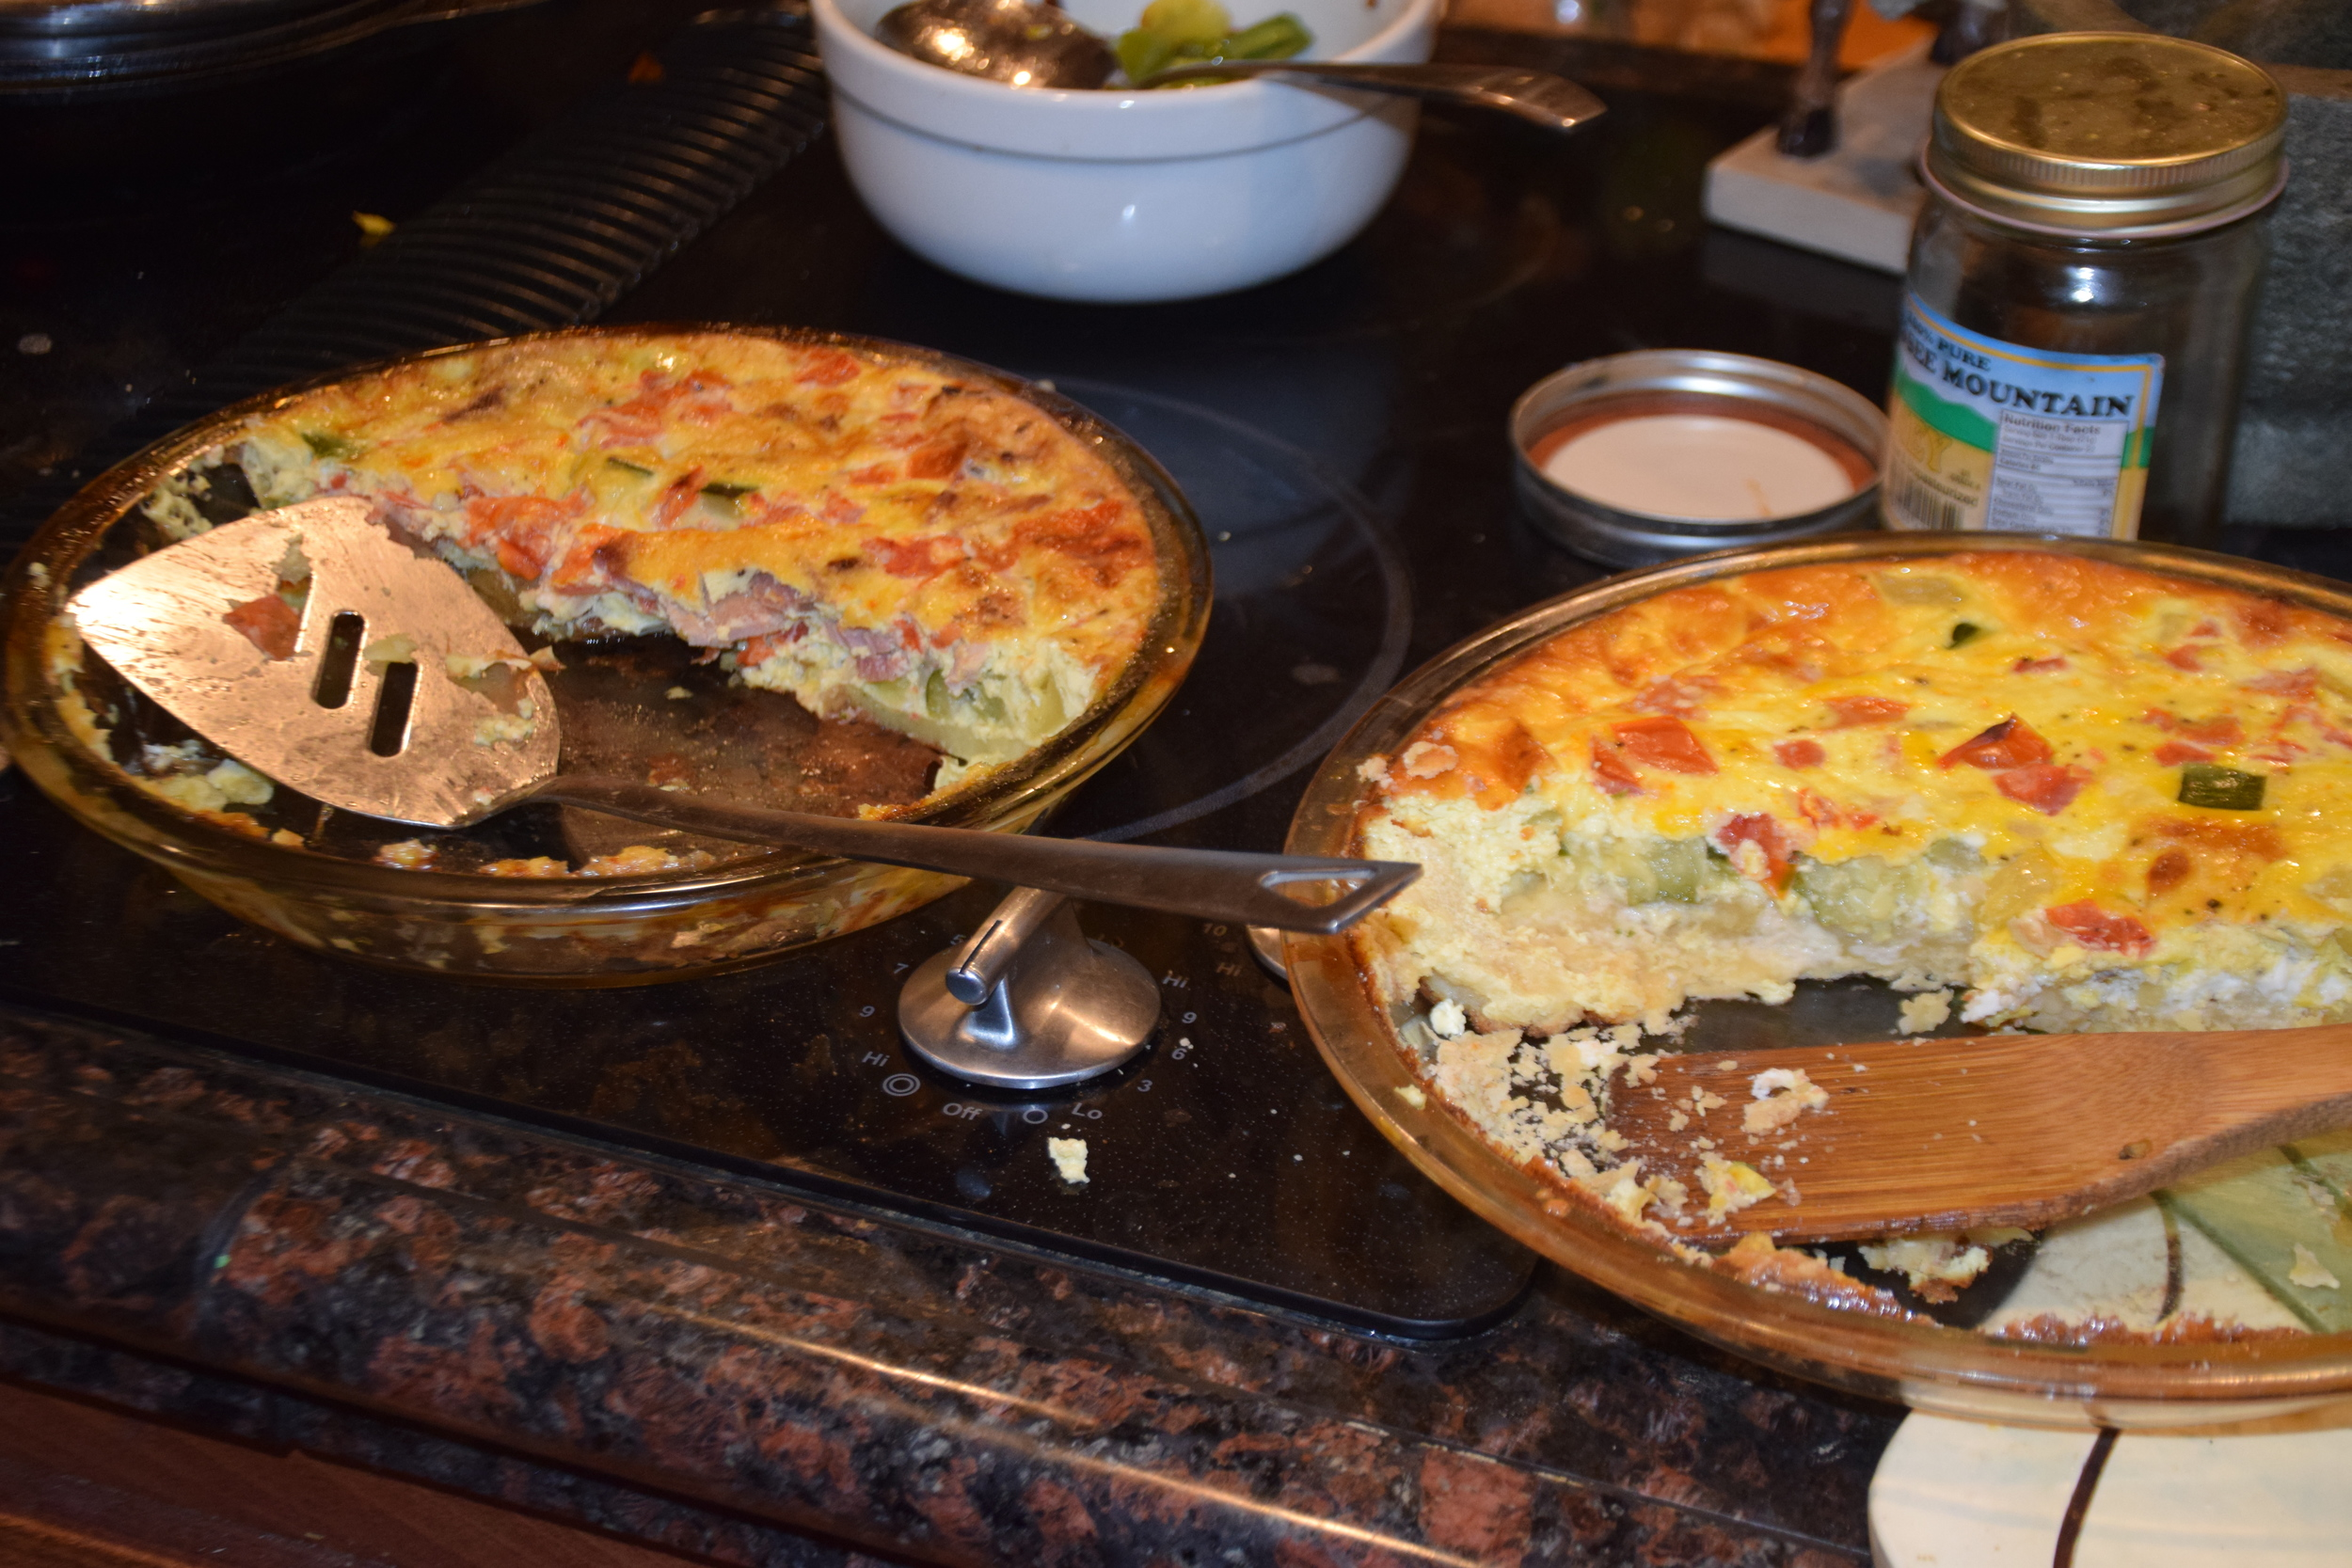 Veggieful quiches!